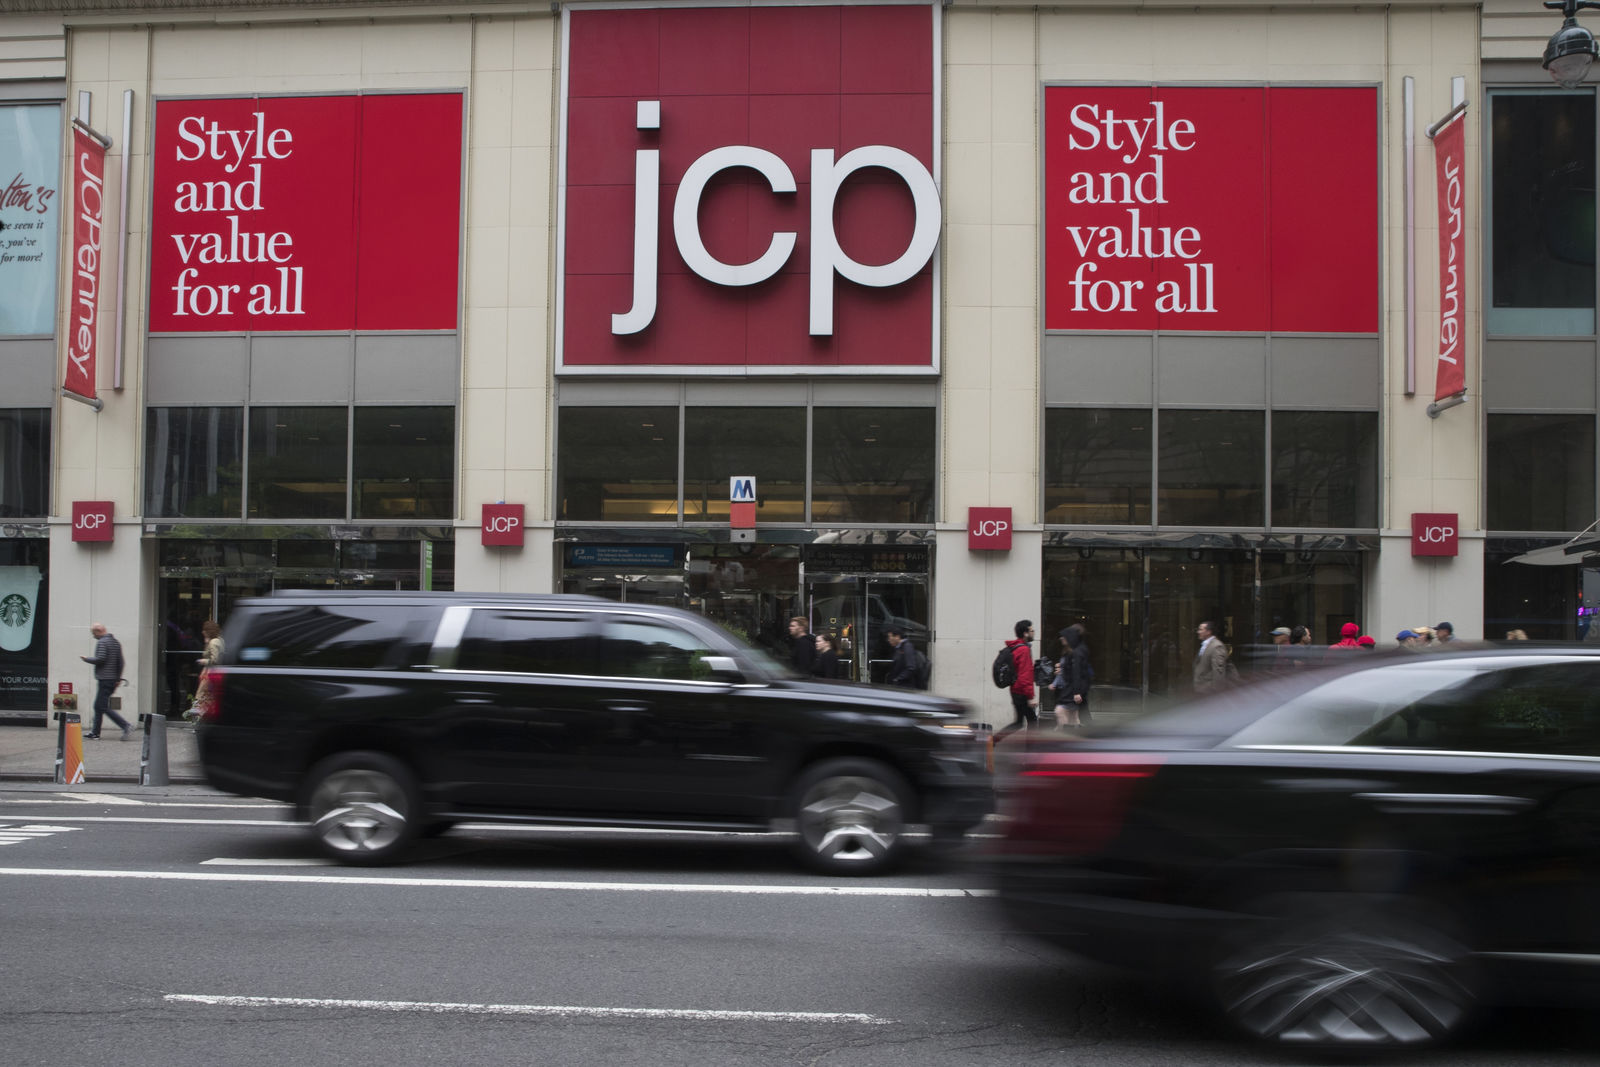 FILE - In this May 16, 2018, file photo, traffic makes its way past a logo J.C. Penney store outside the Manhattan mall in New York. J.C. Penney Co. reports financial results Thursday, Aug. 15..(AP Photo/Mary Altaffer, File)